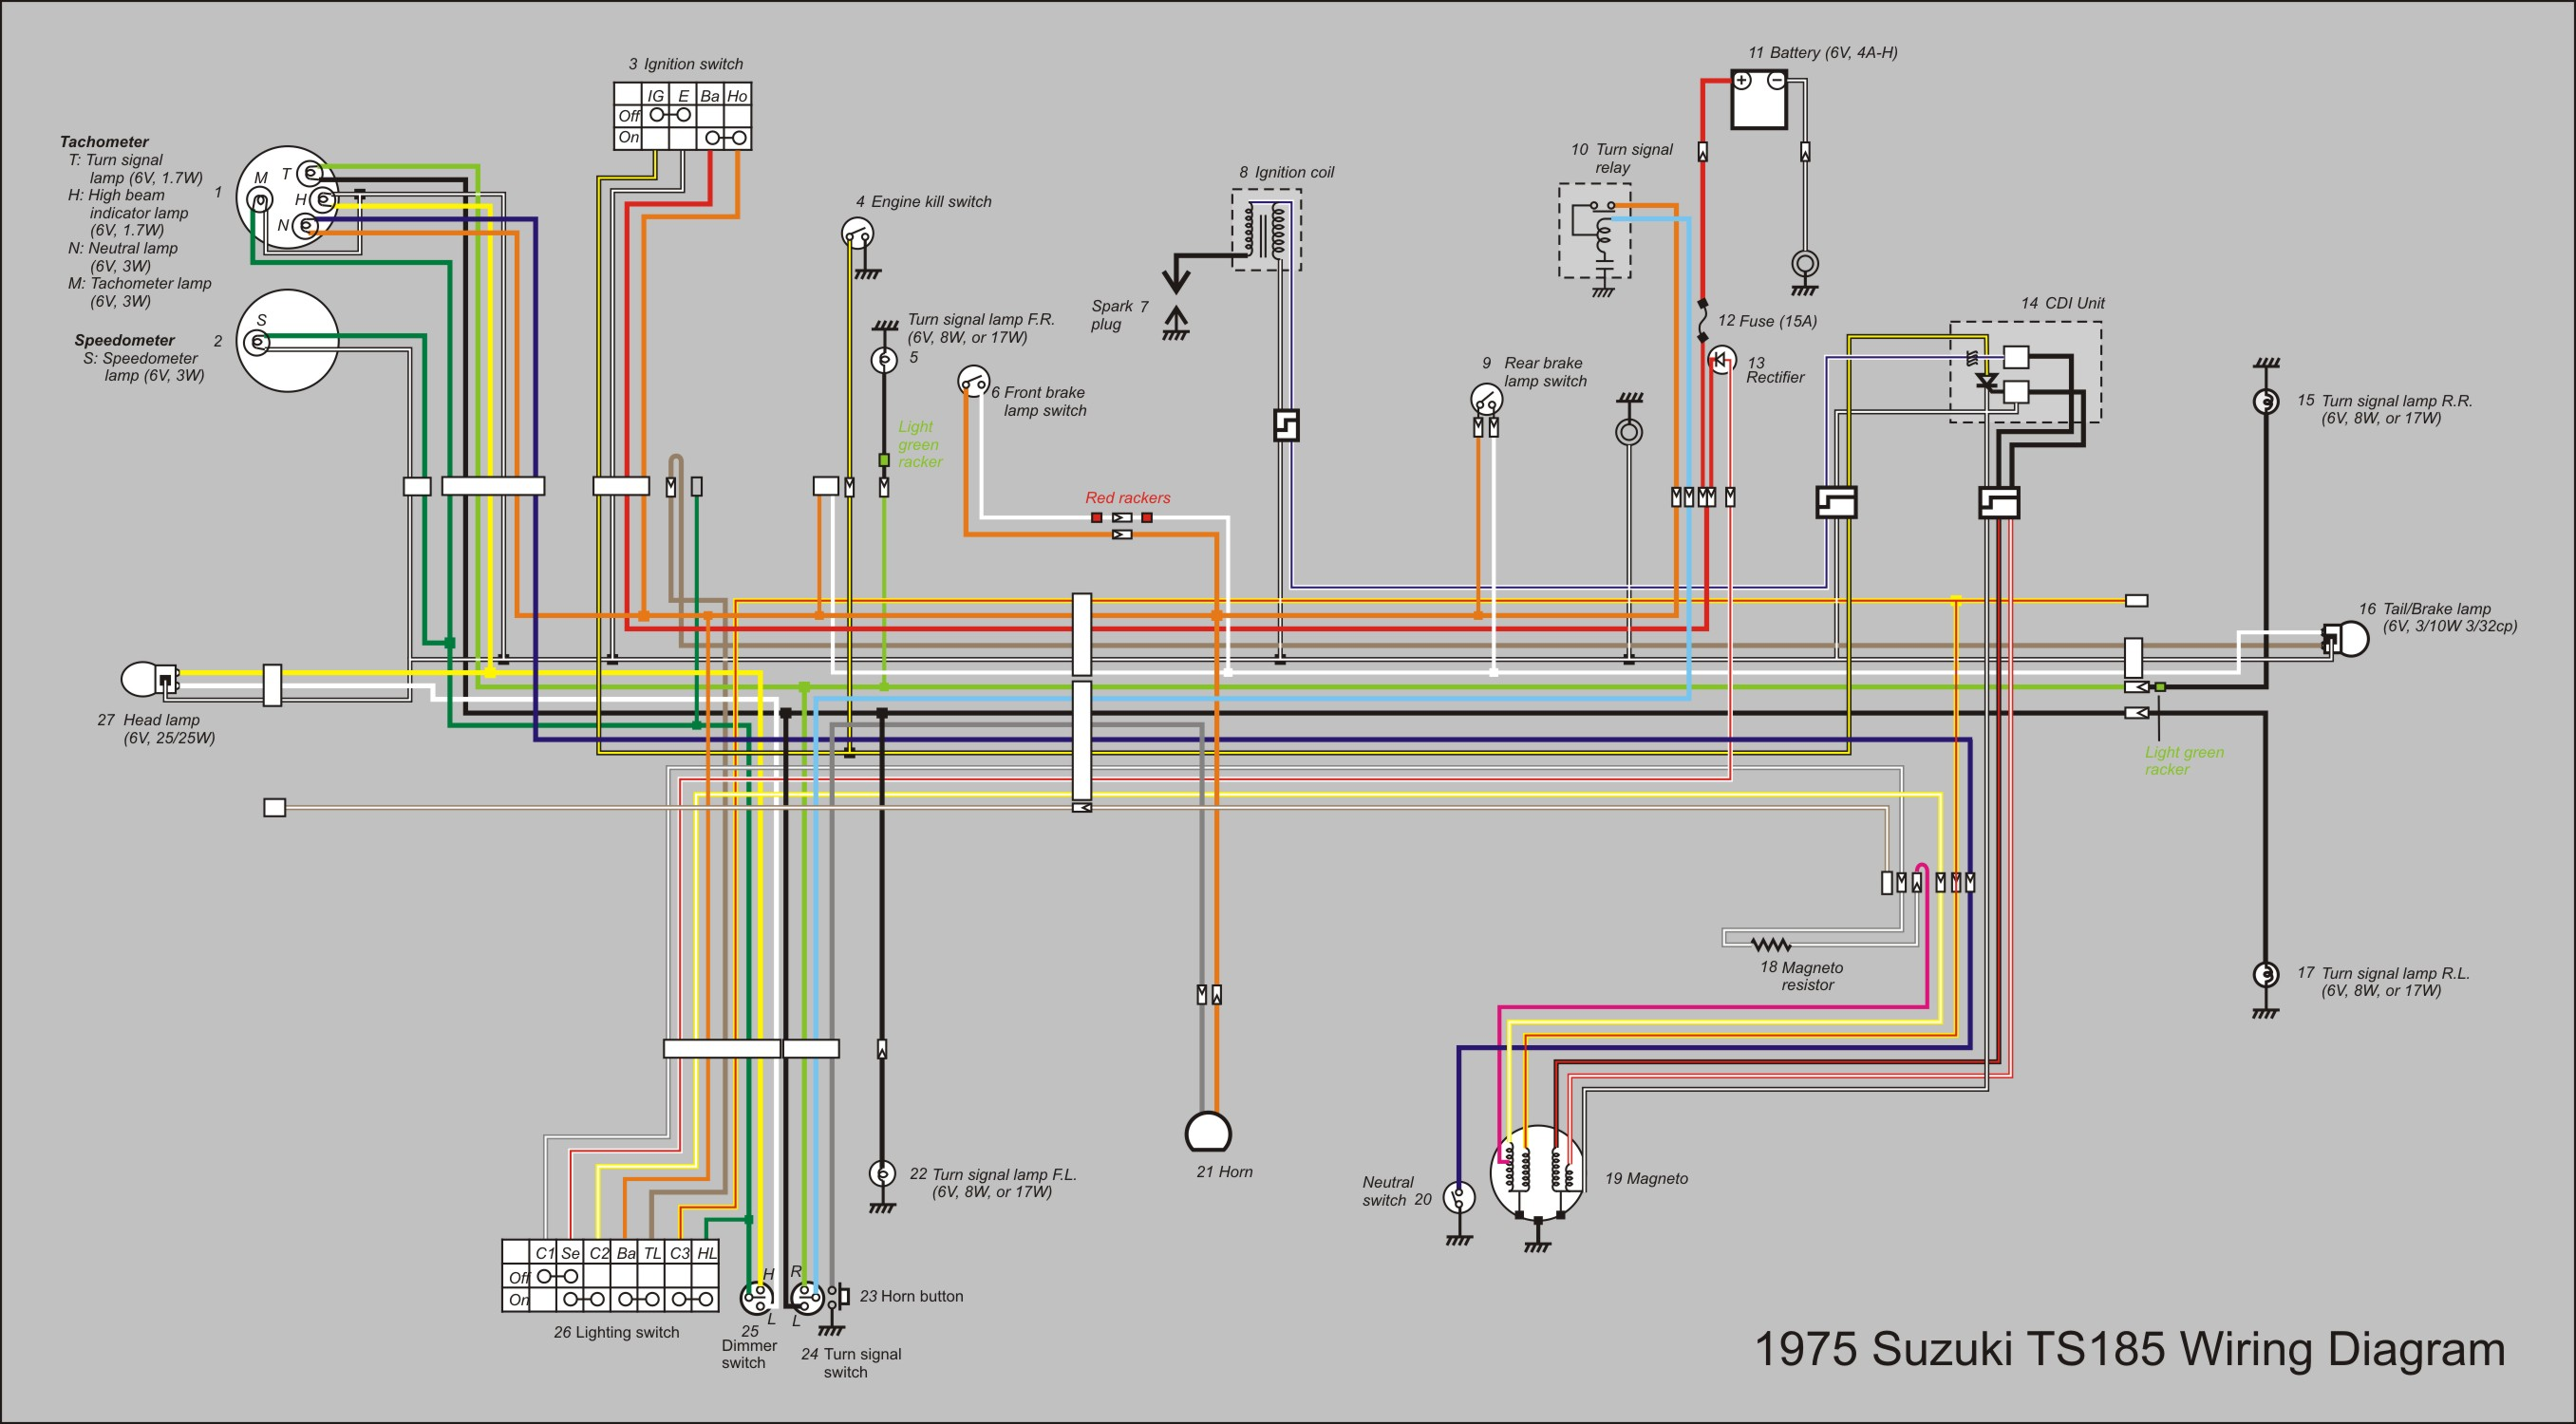 TS185_Wiring_Diagram_new 1974 tc125 wiring harness suzuki tc125 \u2022 indy500 co  at creativeand.co